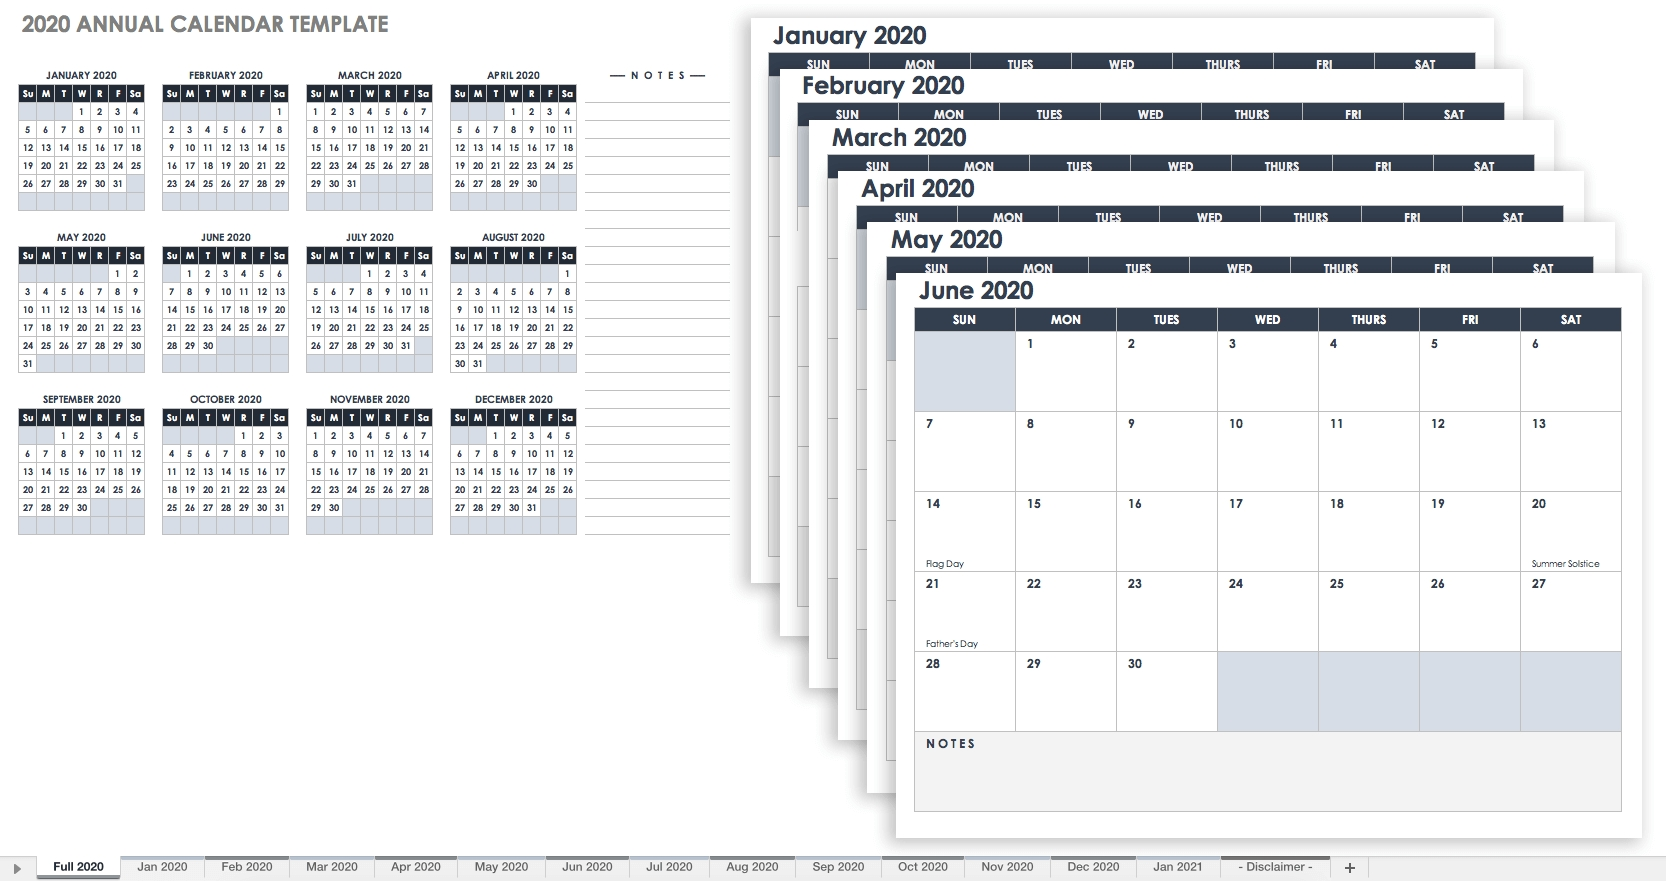 Free Blank Calendar Templates - Smartsheet pertaining to Year Calendar 2020 With Space To Write